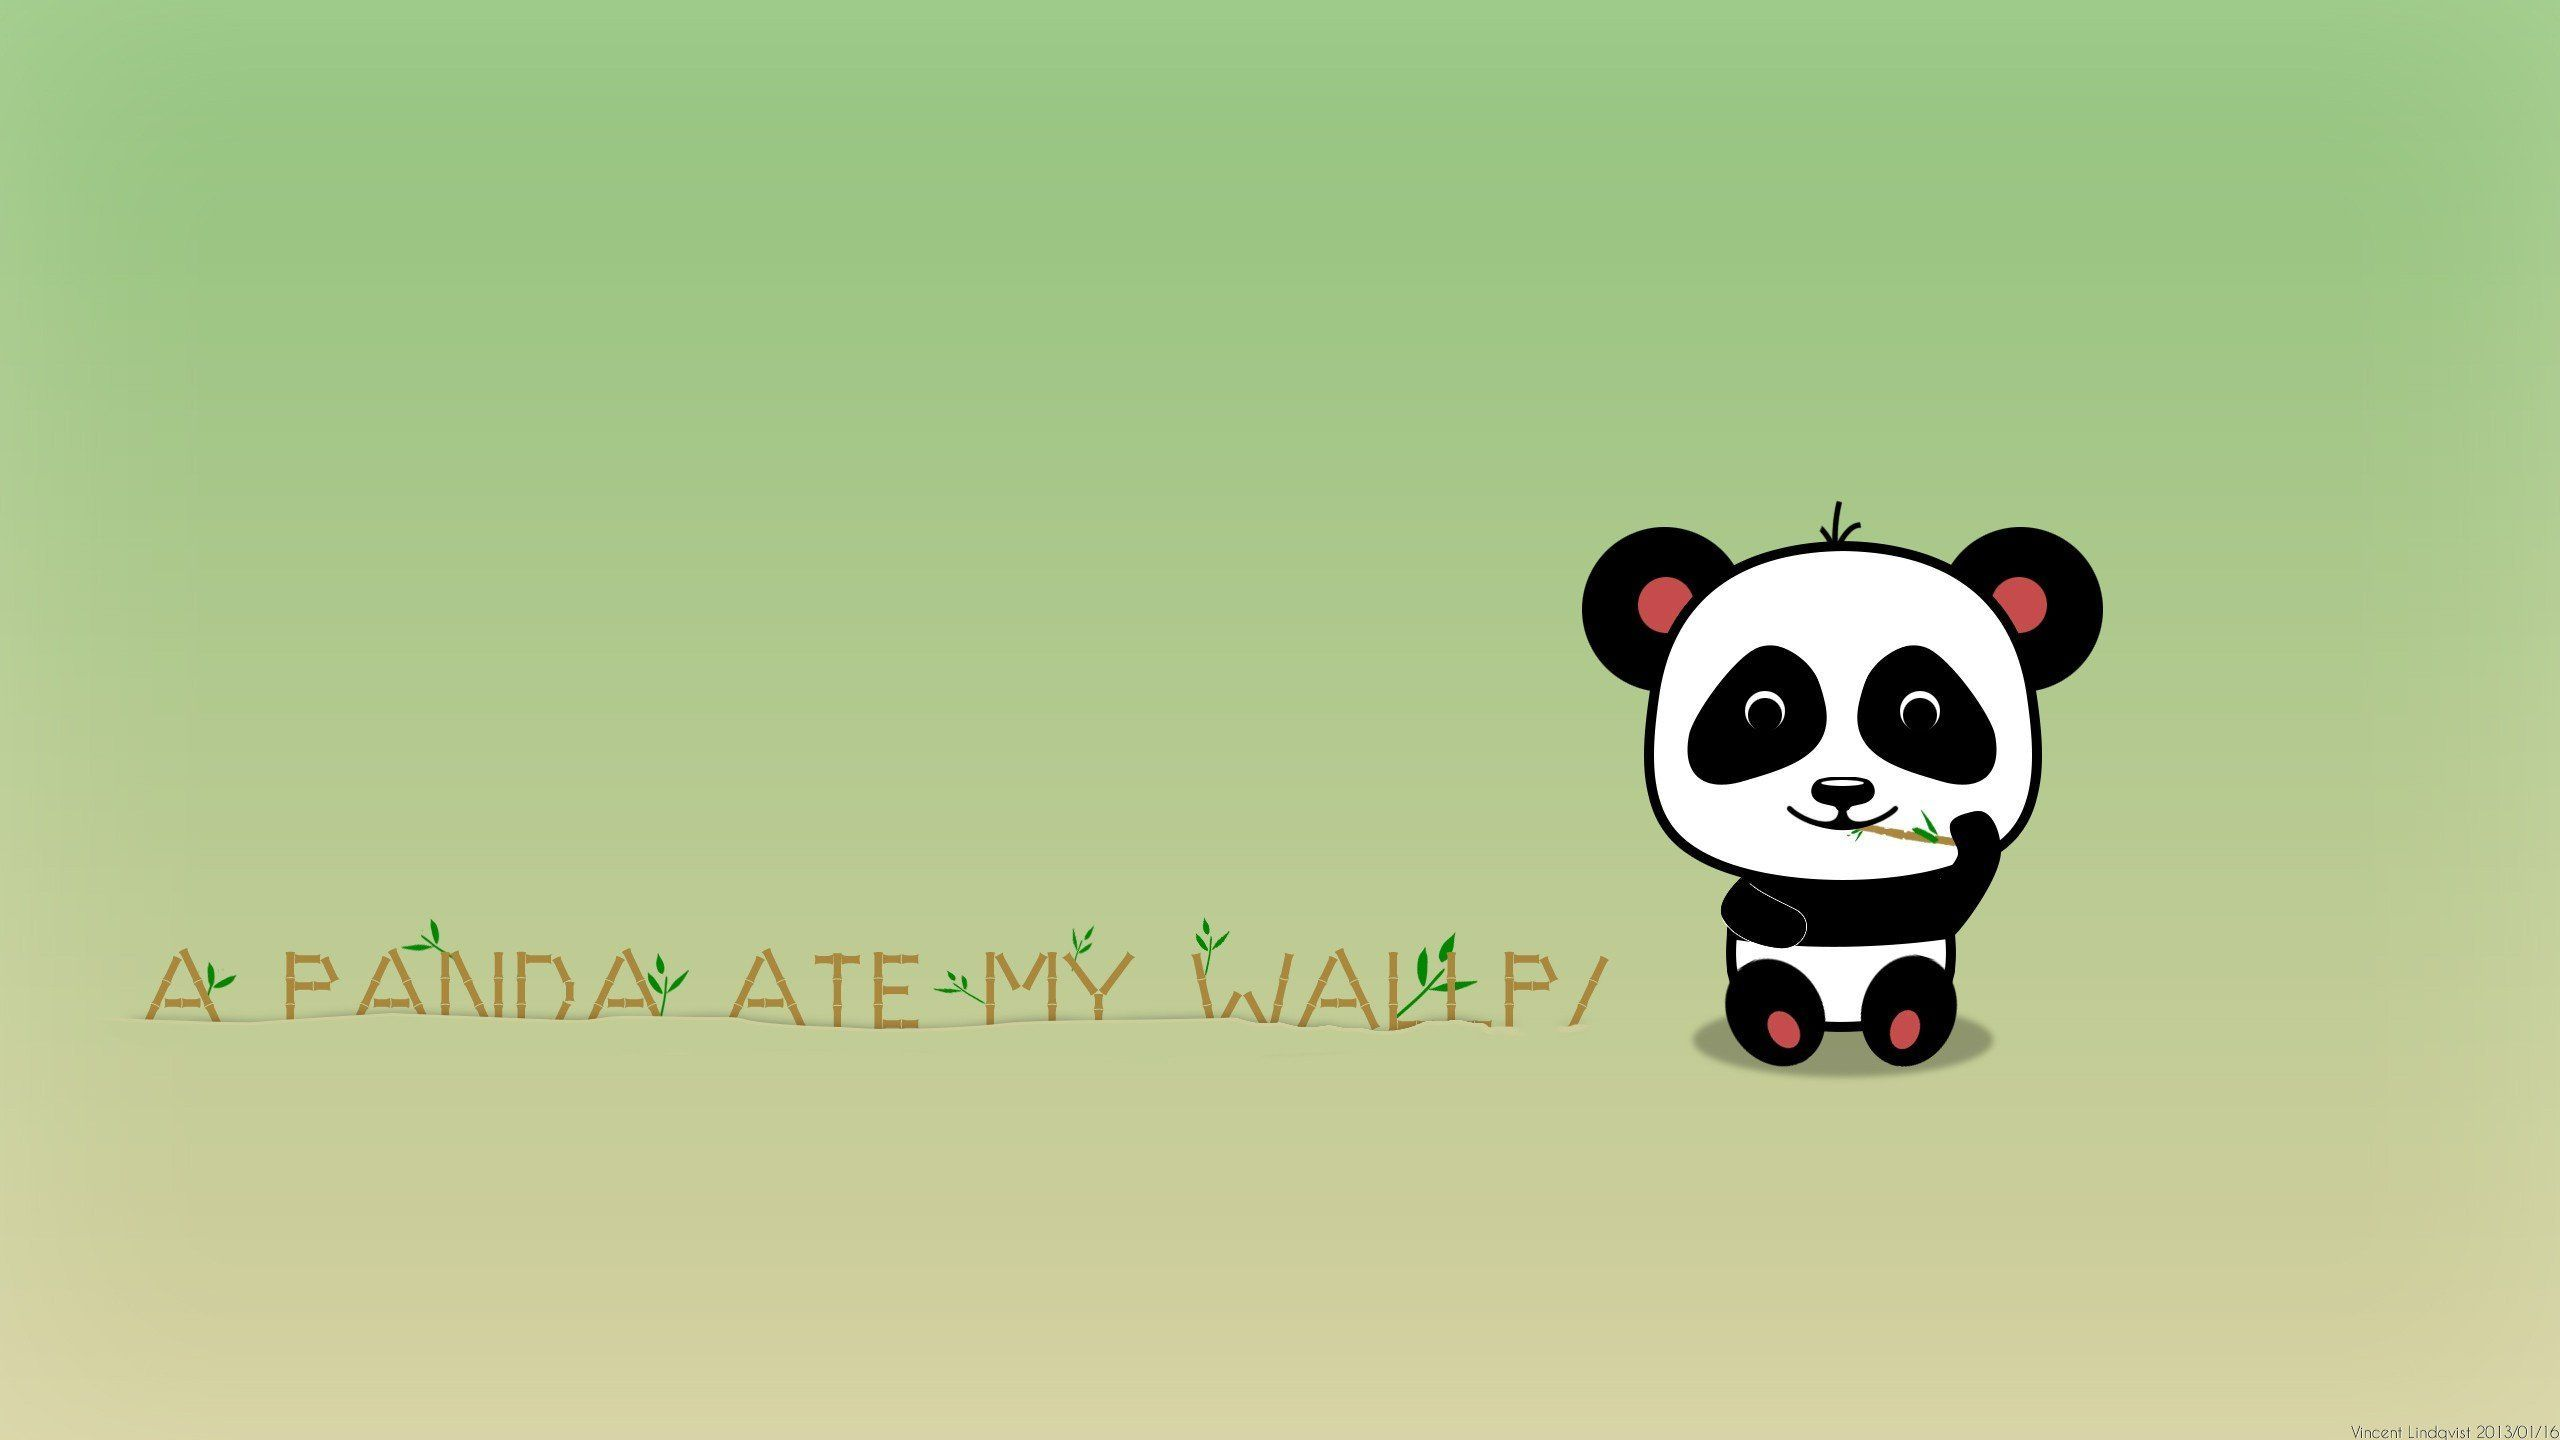 Download Cute Panda Live Wallpaper For Android Cute Panda Live 2560 1440 Cute Panda Pict Cute Cartoon Wallpapers Cute Panda Wallpaper Anime Wallpaper Download